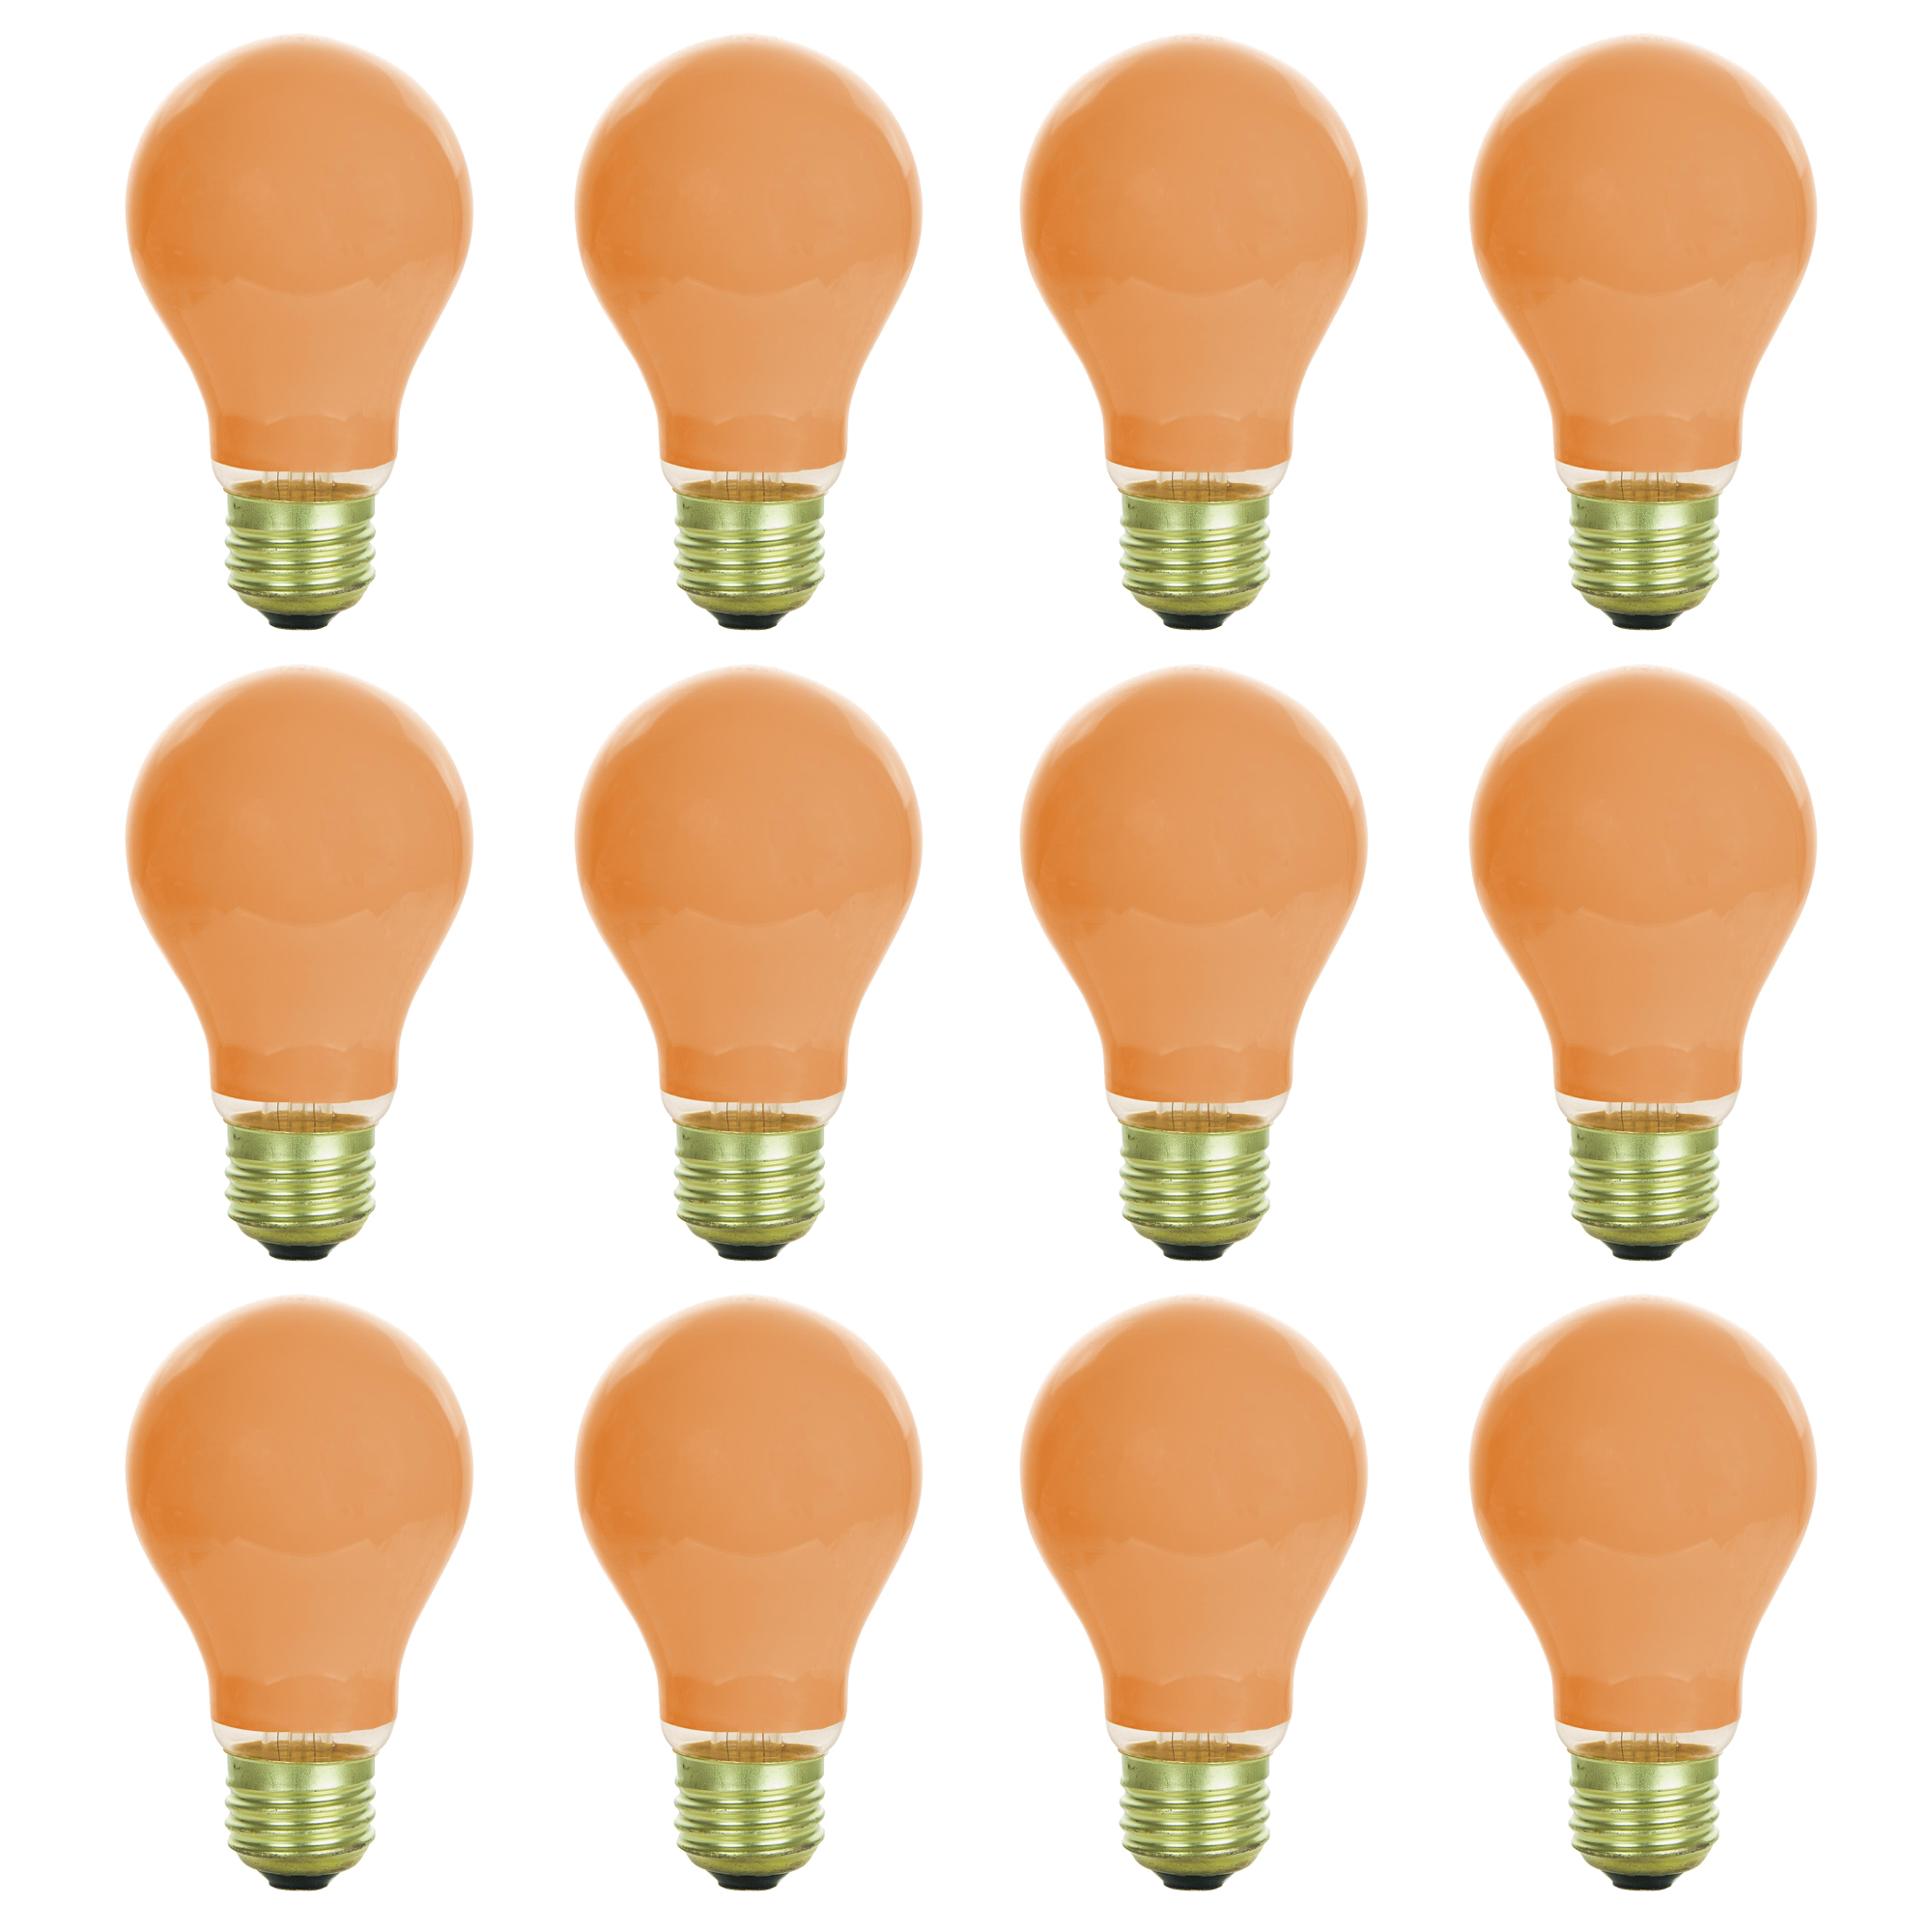 12 Pack of Sunlite 40 watt Ceramic Orange Colored Incandescent Light Bulb - Parties, Decorative, and Holiday 1,250 Average Life Hours